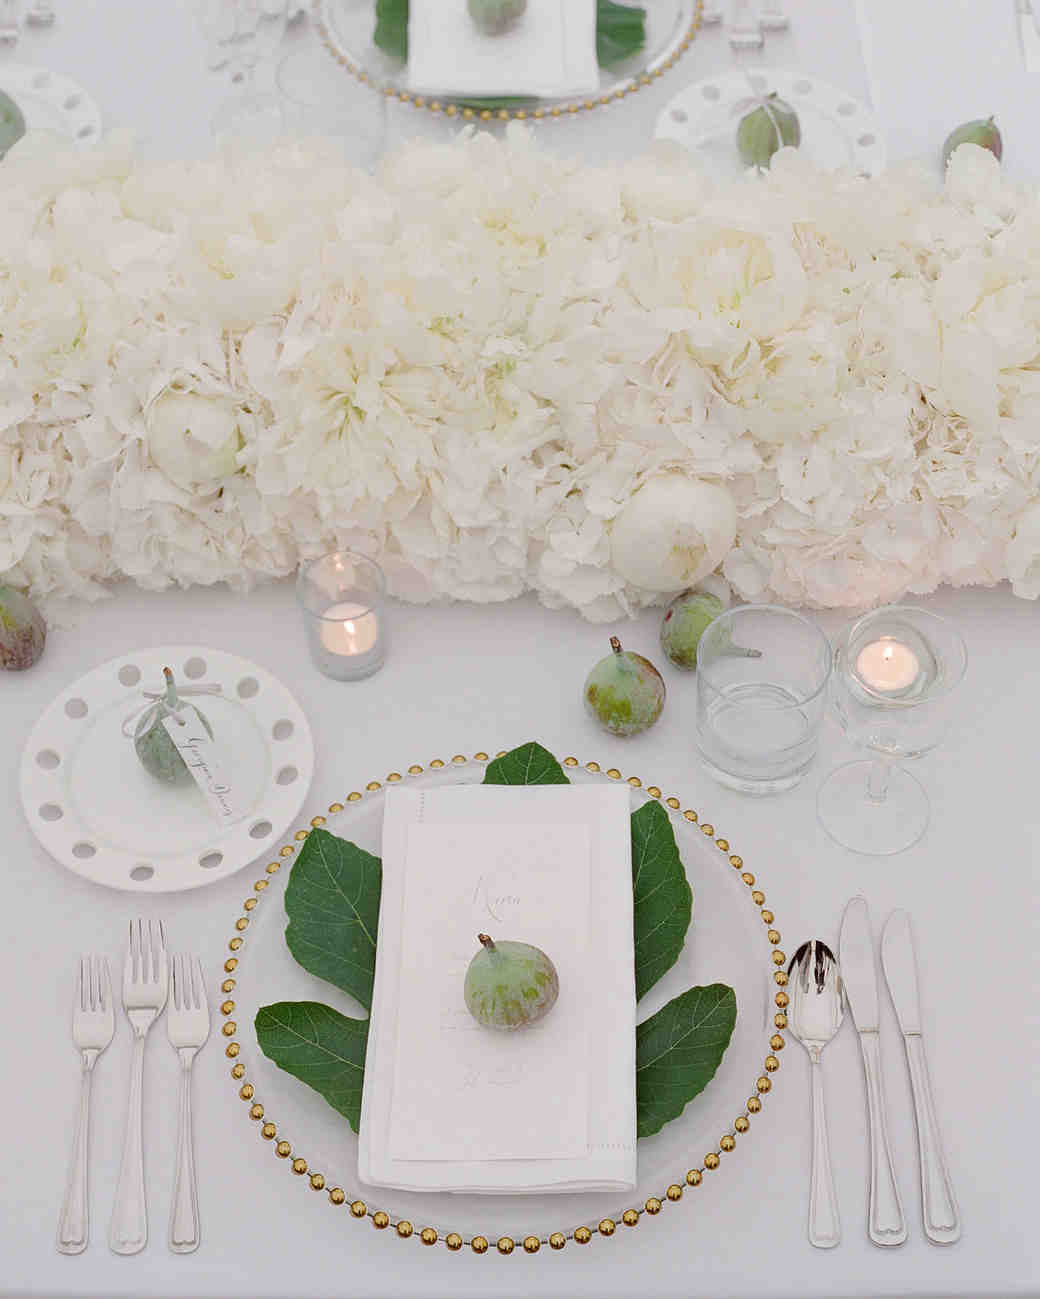 peony matthew england wedding place setting with figs and white peonies